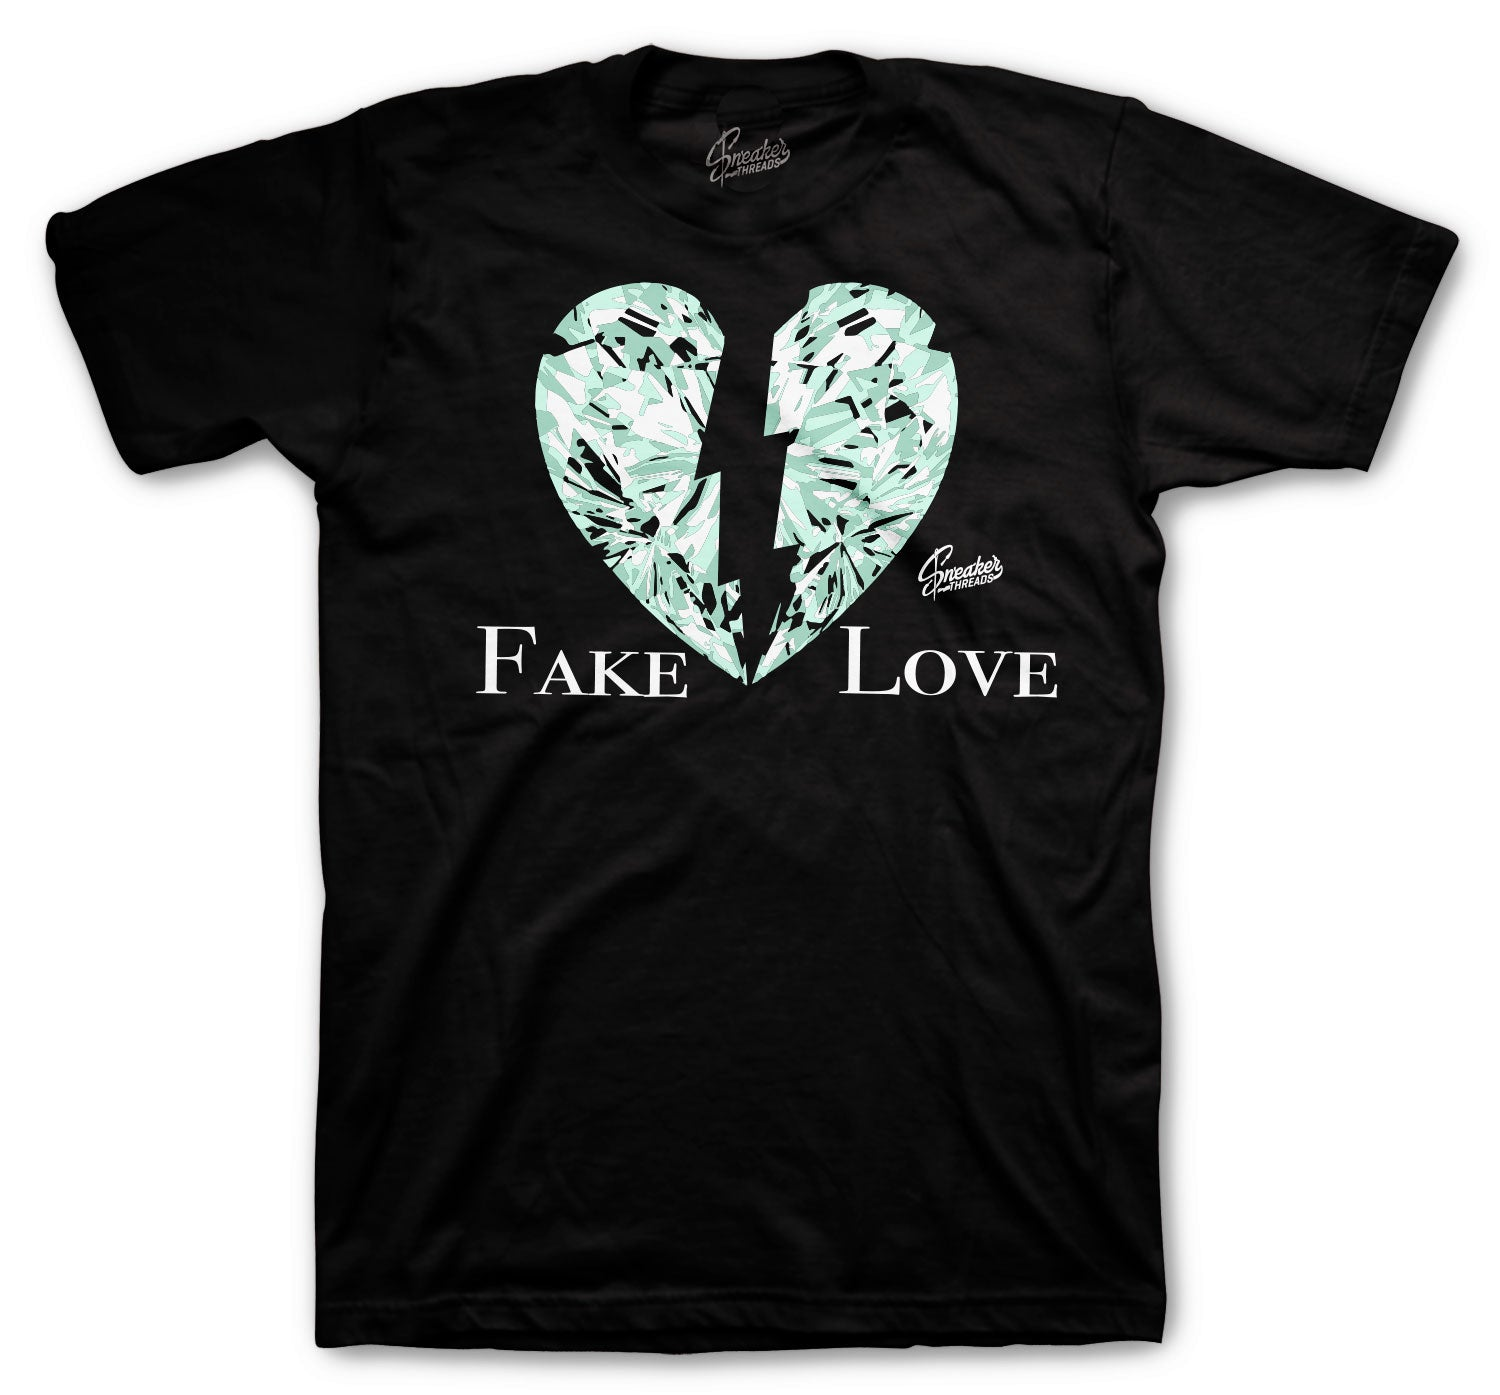 Barely Green All Star Shirt - Fake Love - Black